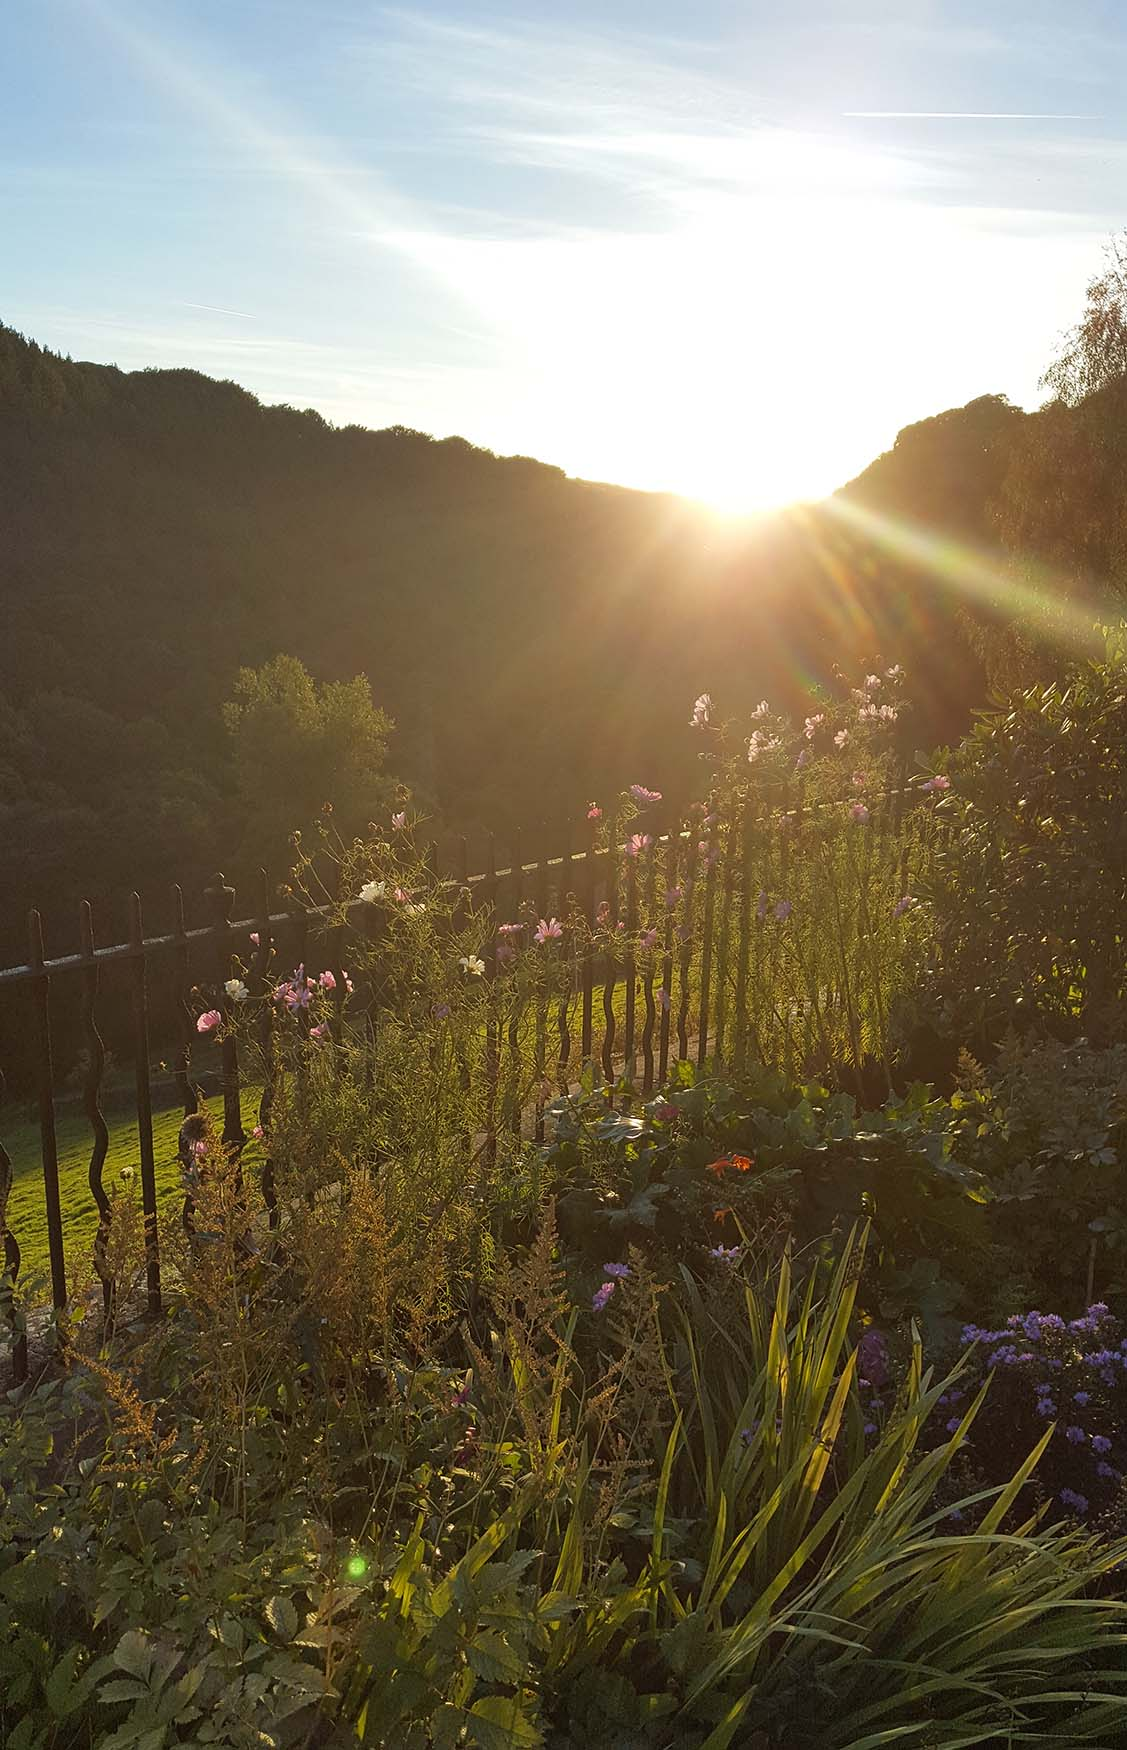 Sunset at Lumb Bank